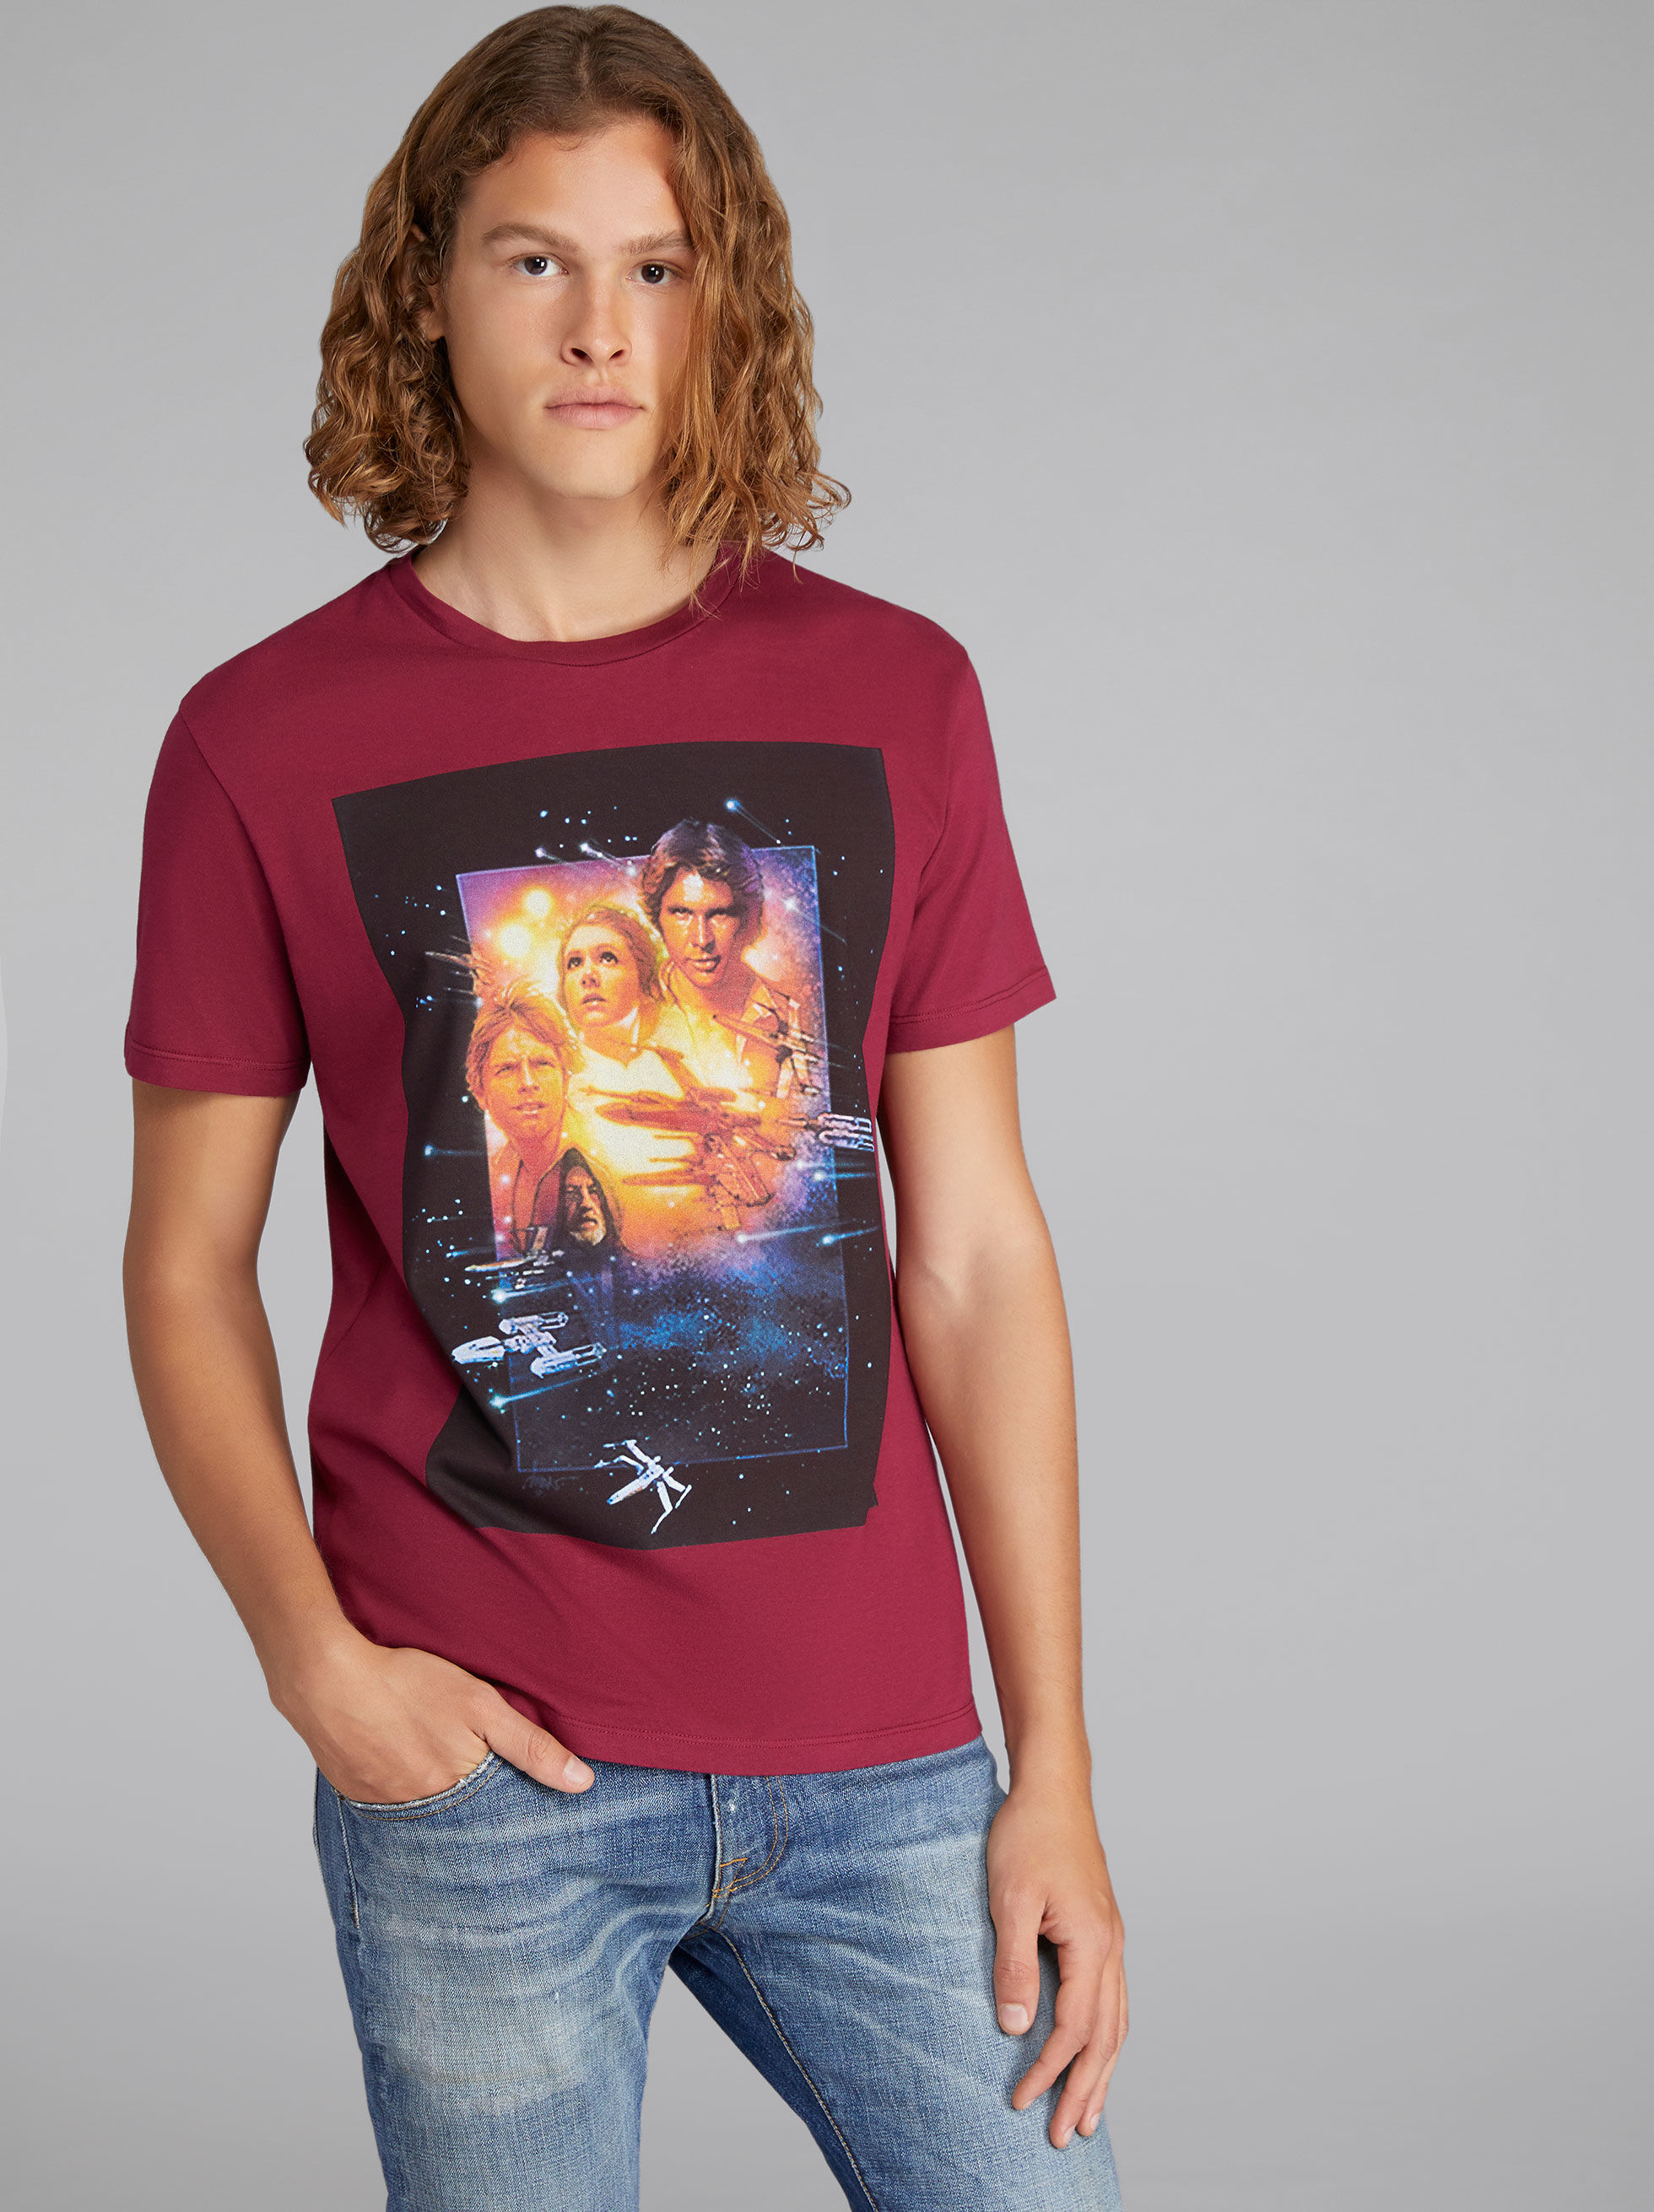 T-SHIRT ETRO X STAR WARS